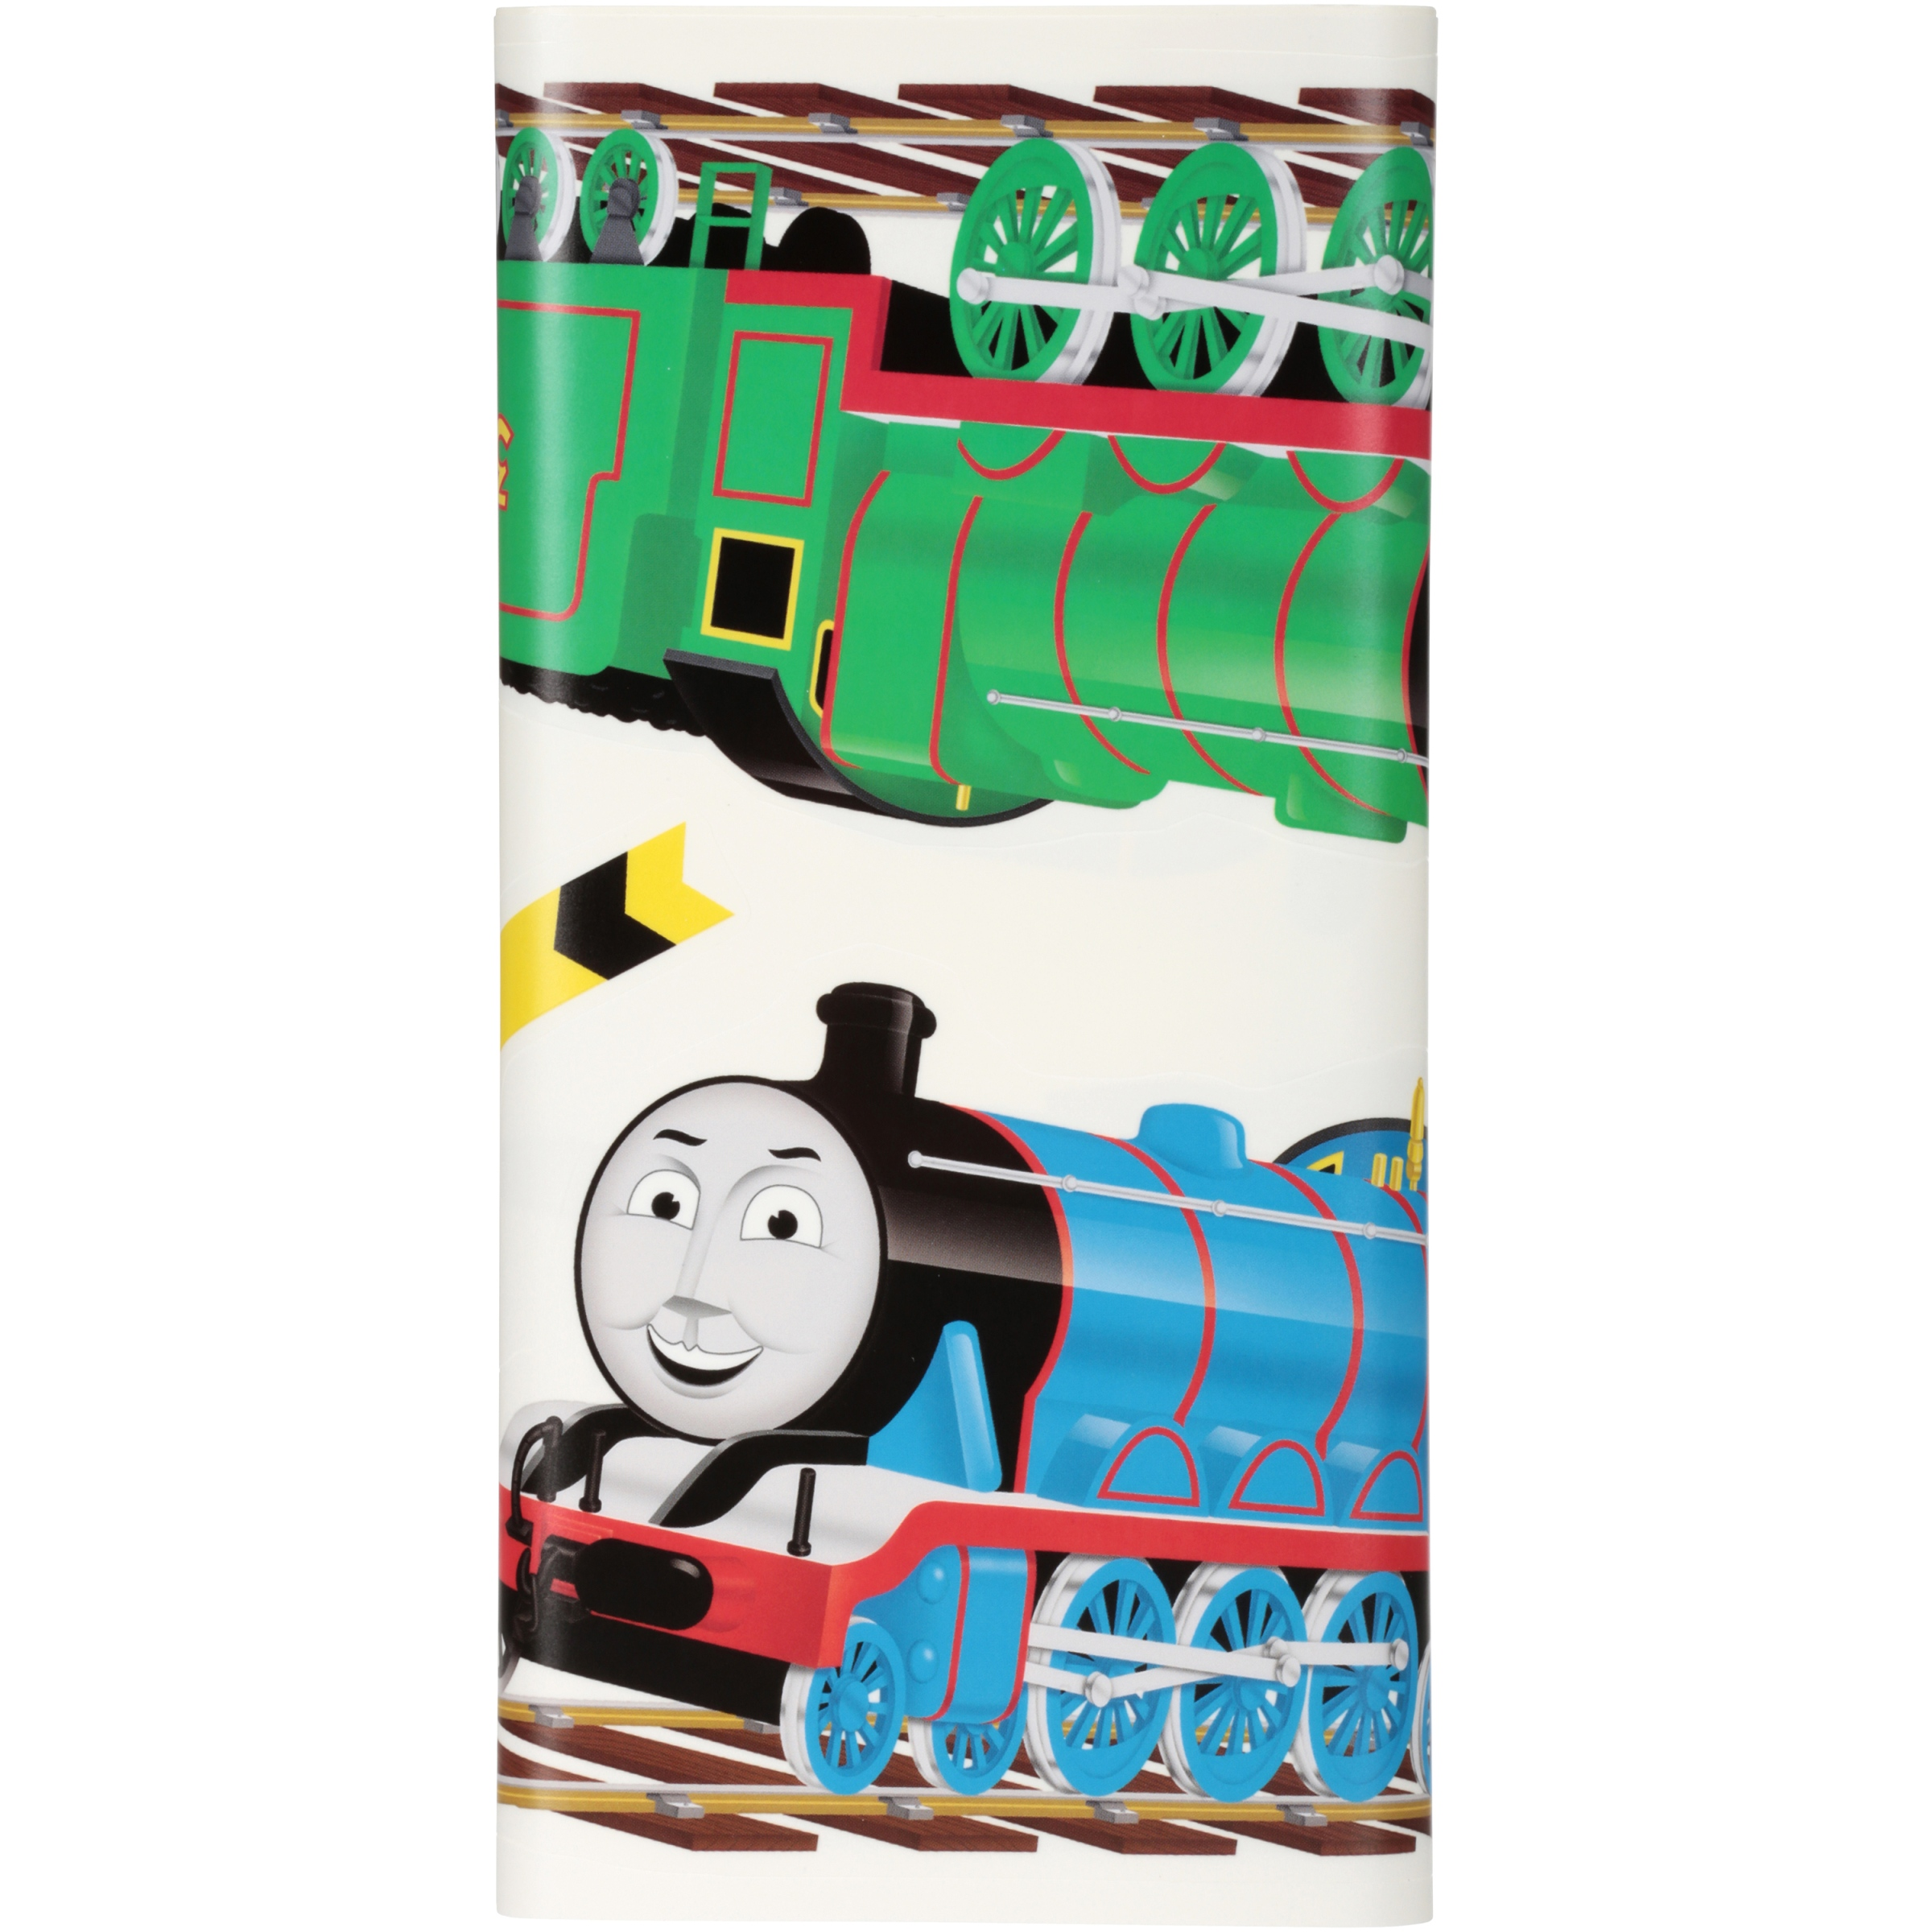 2d9330a5 Thomas & Friends Peel and Stick Wall Decals 27 ct Pack - Walmart.com